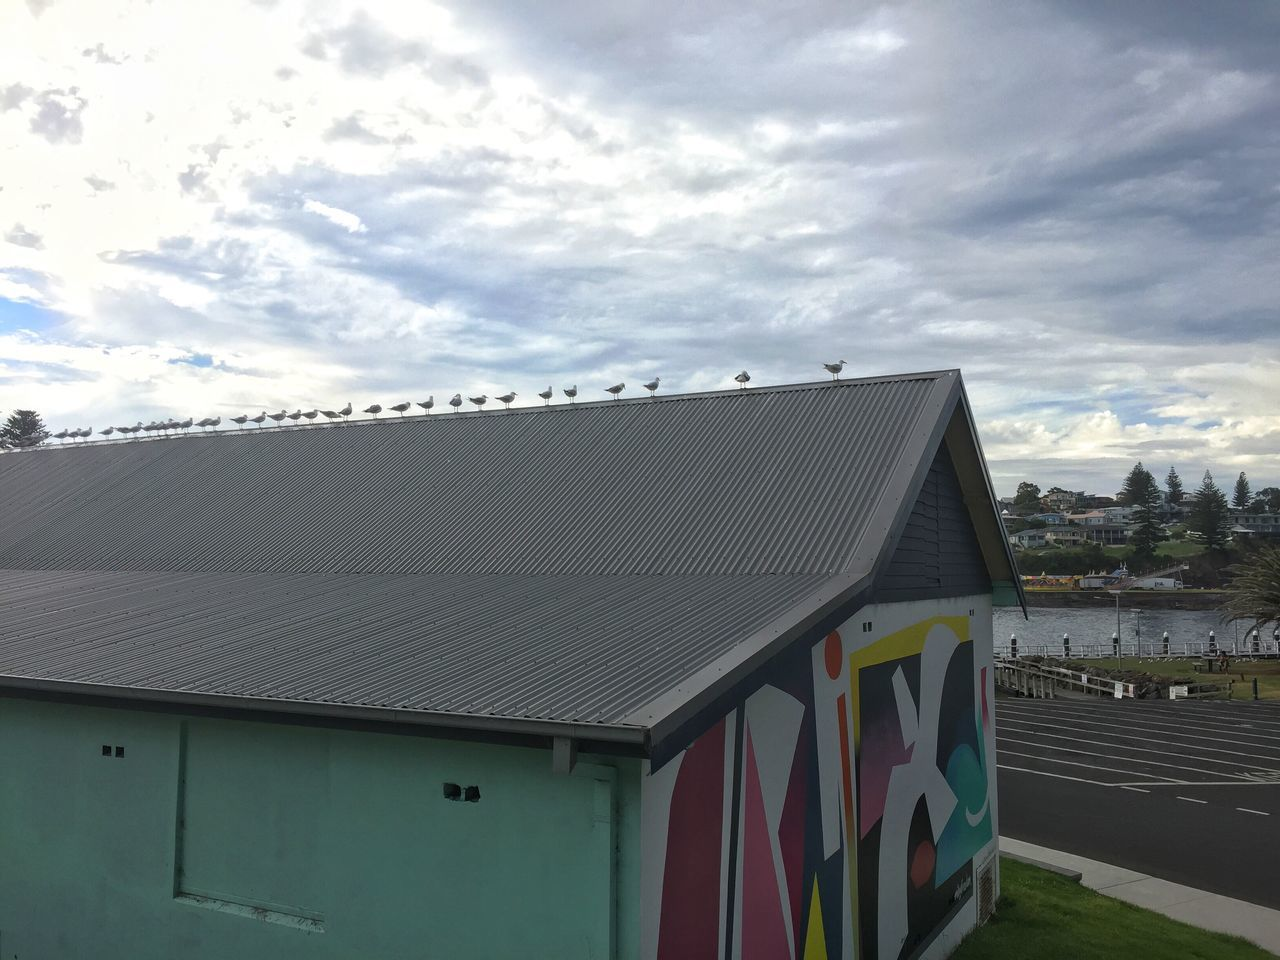 Seagulls lining up on the roof Building Exterior Architecture Cloud - Sky Roof Seagulls Lining Up Graffiti Wall Art